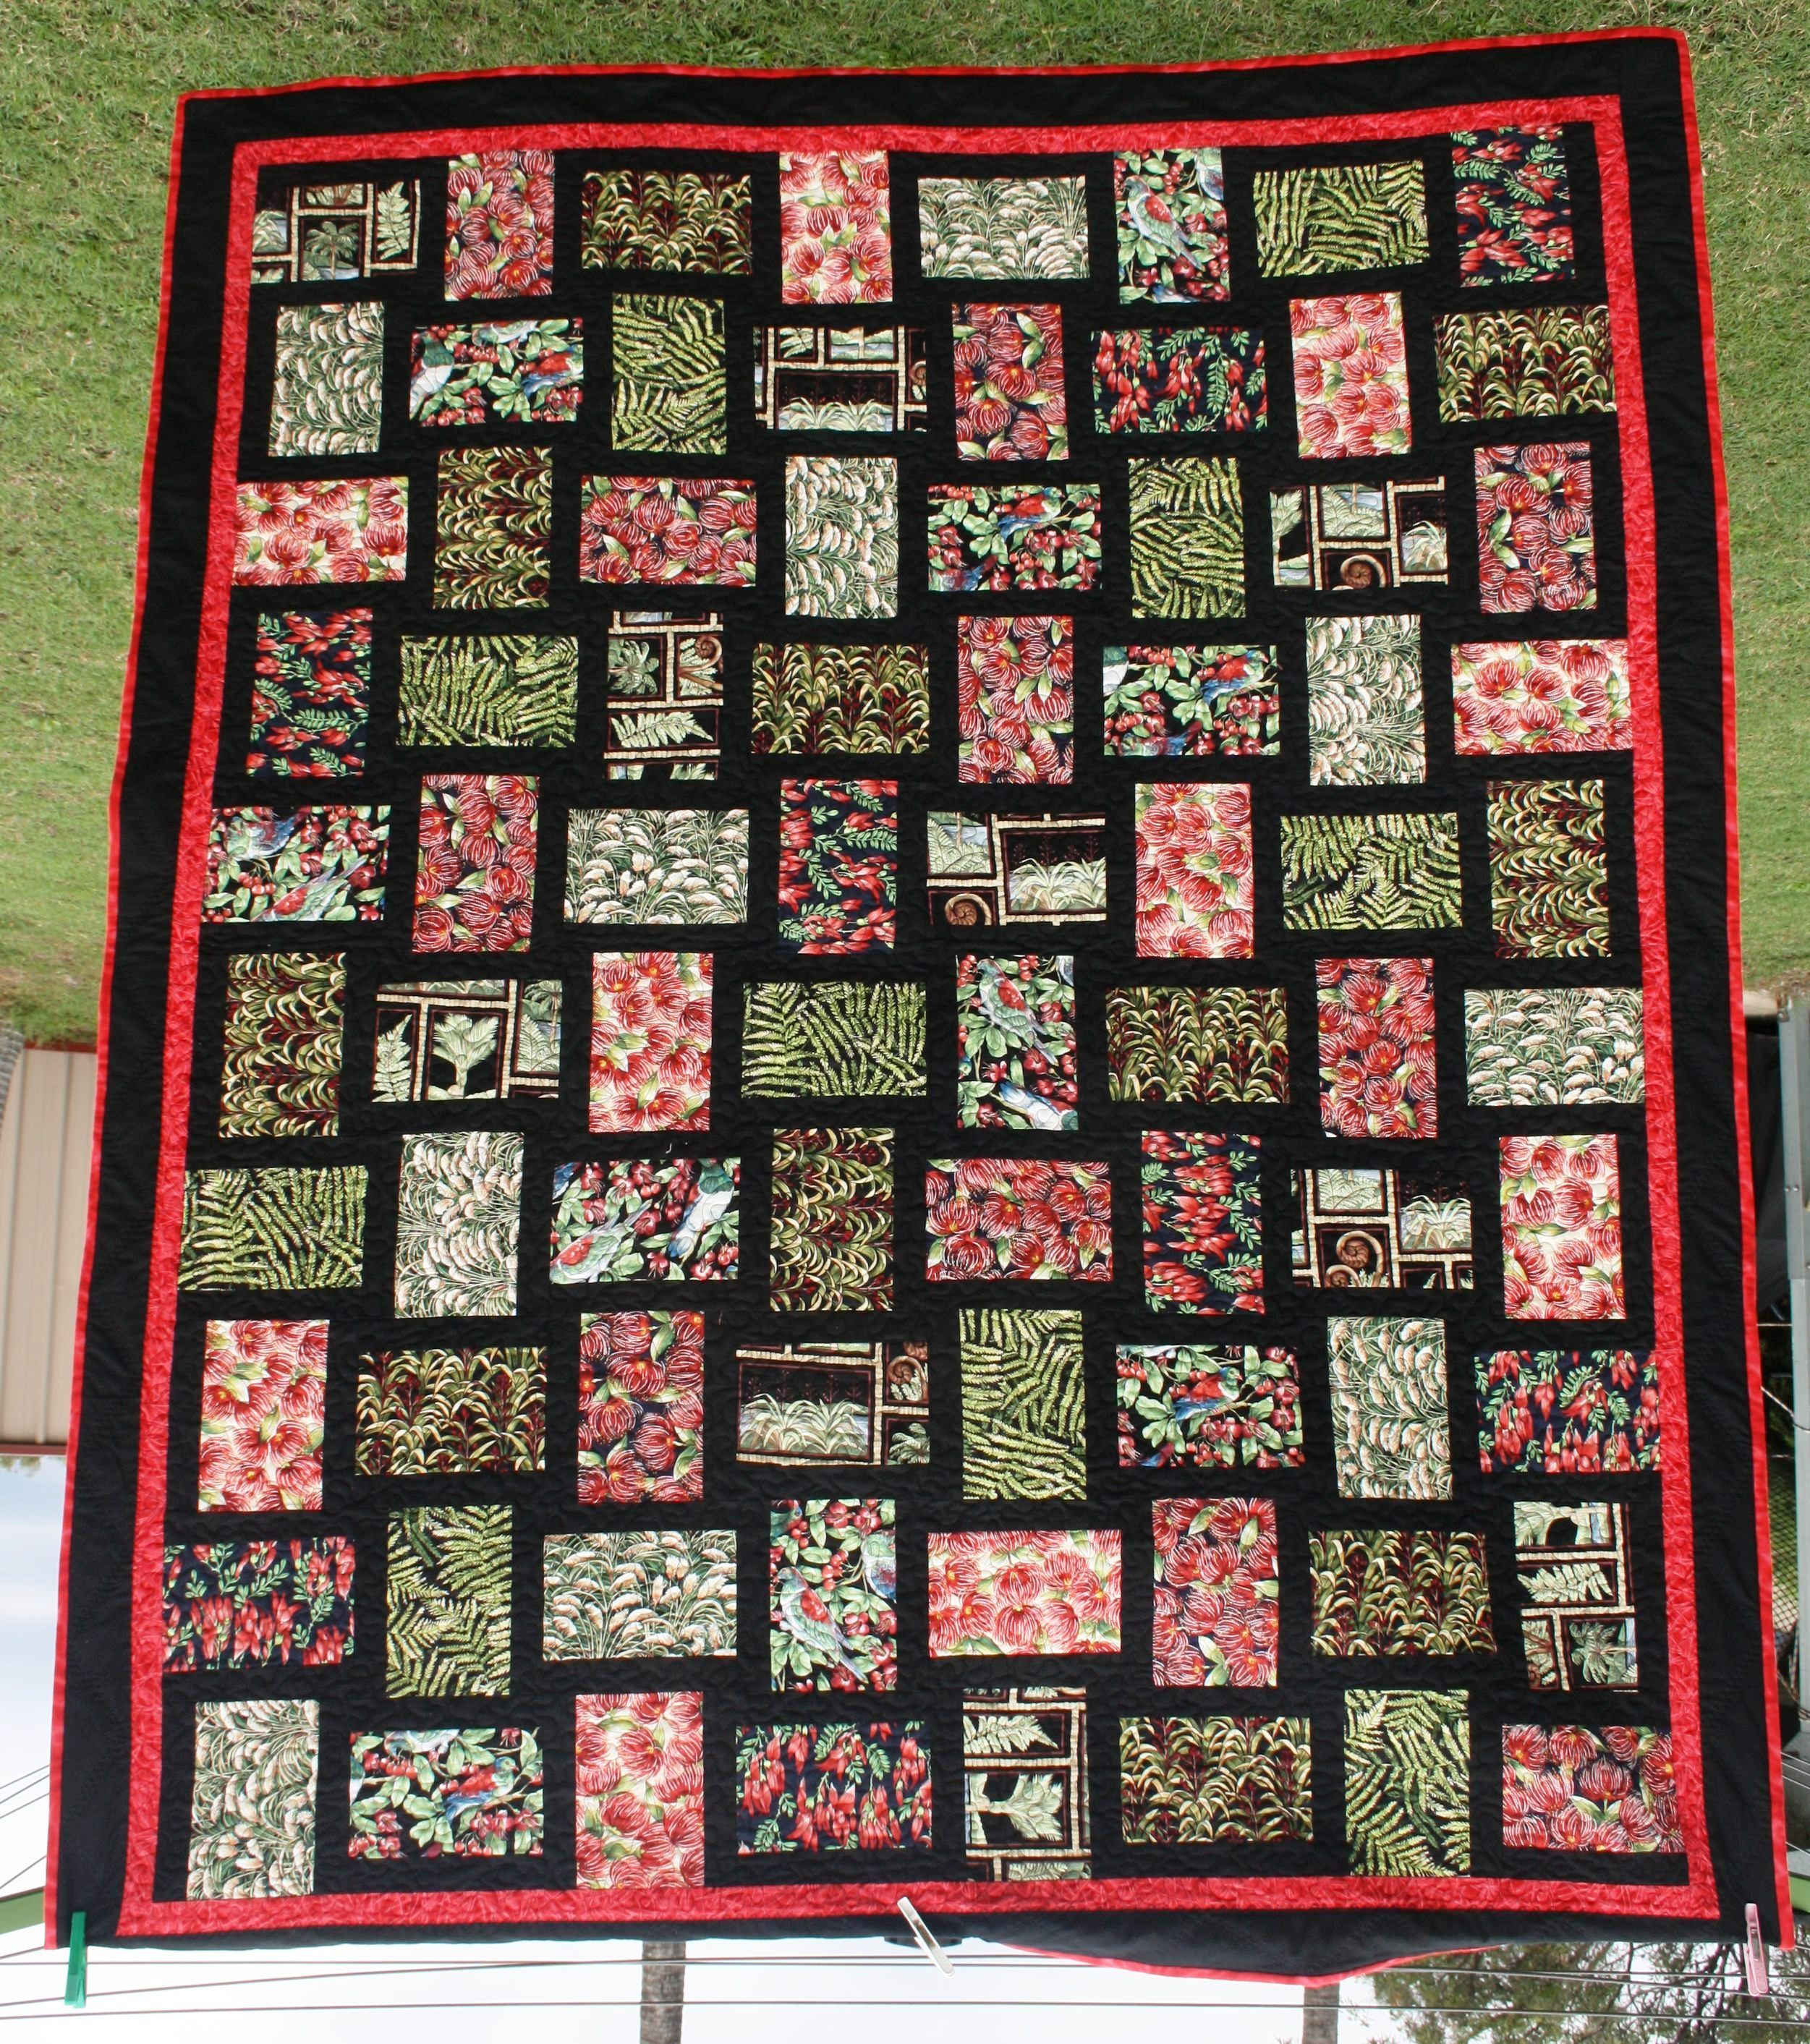 My kiwiana quilt made from fabrics purchased in New Zealand. | My ... : quilting fabric nz - Adamdwight.com